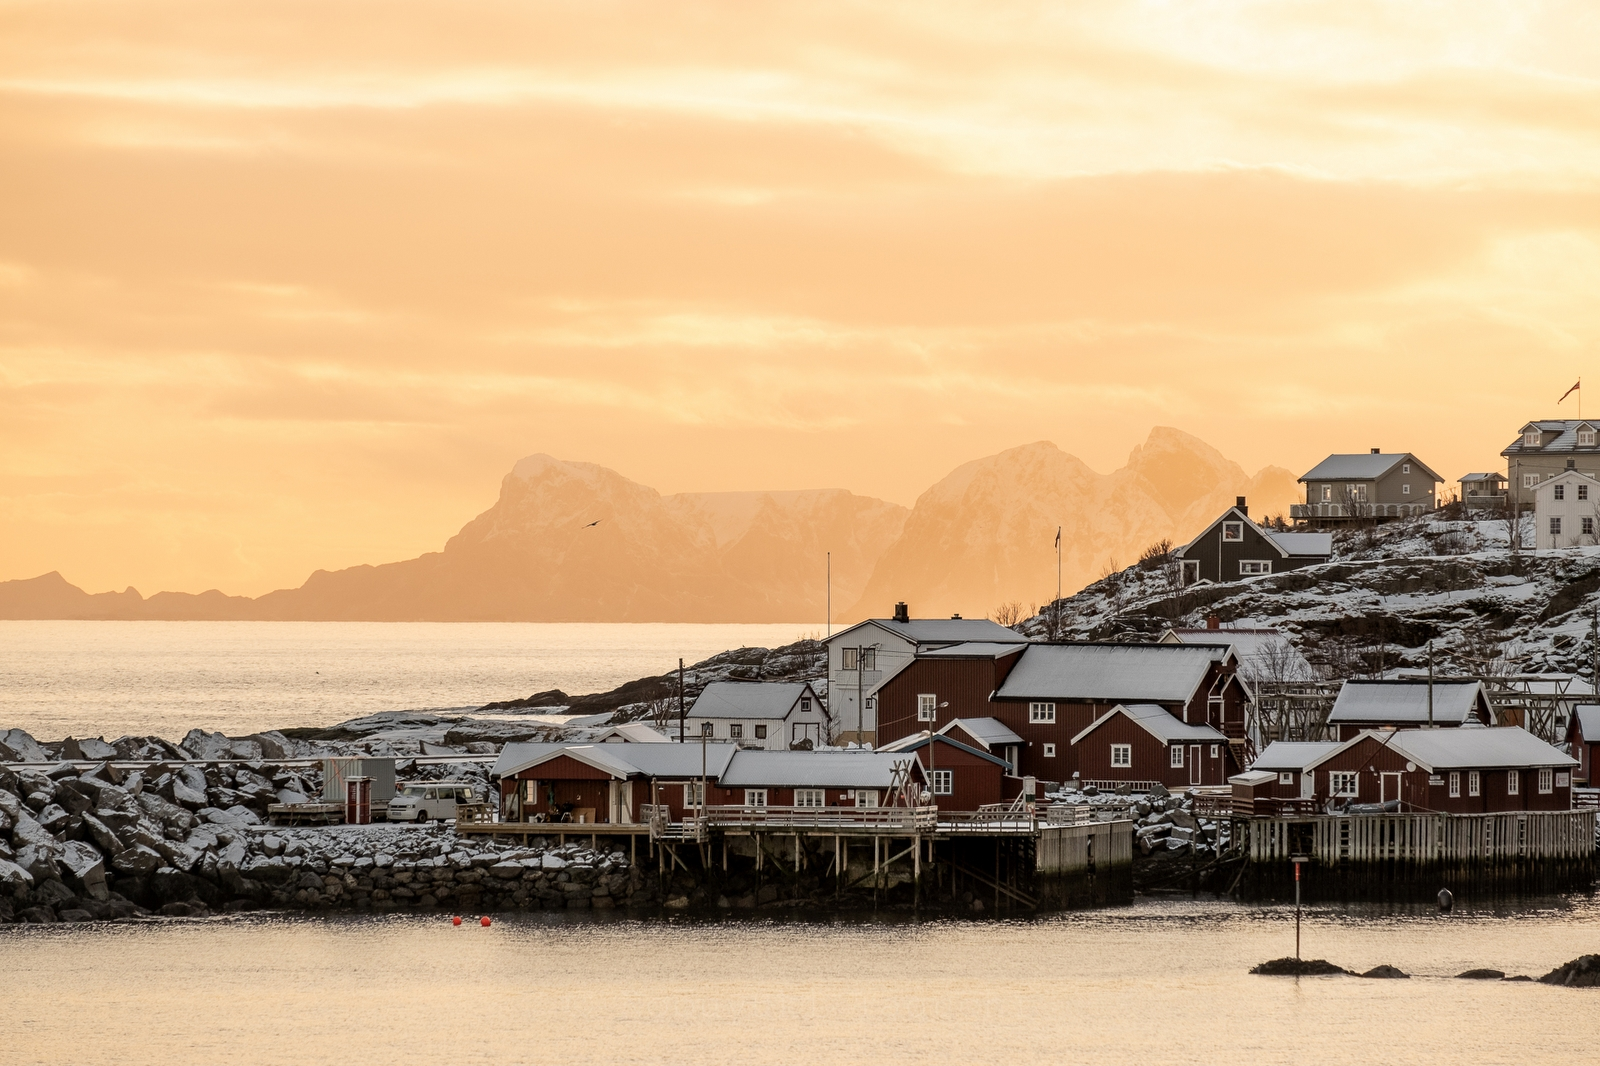 Norway Lofoten Landscape Photography - Photo 4060